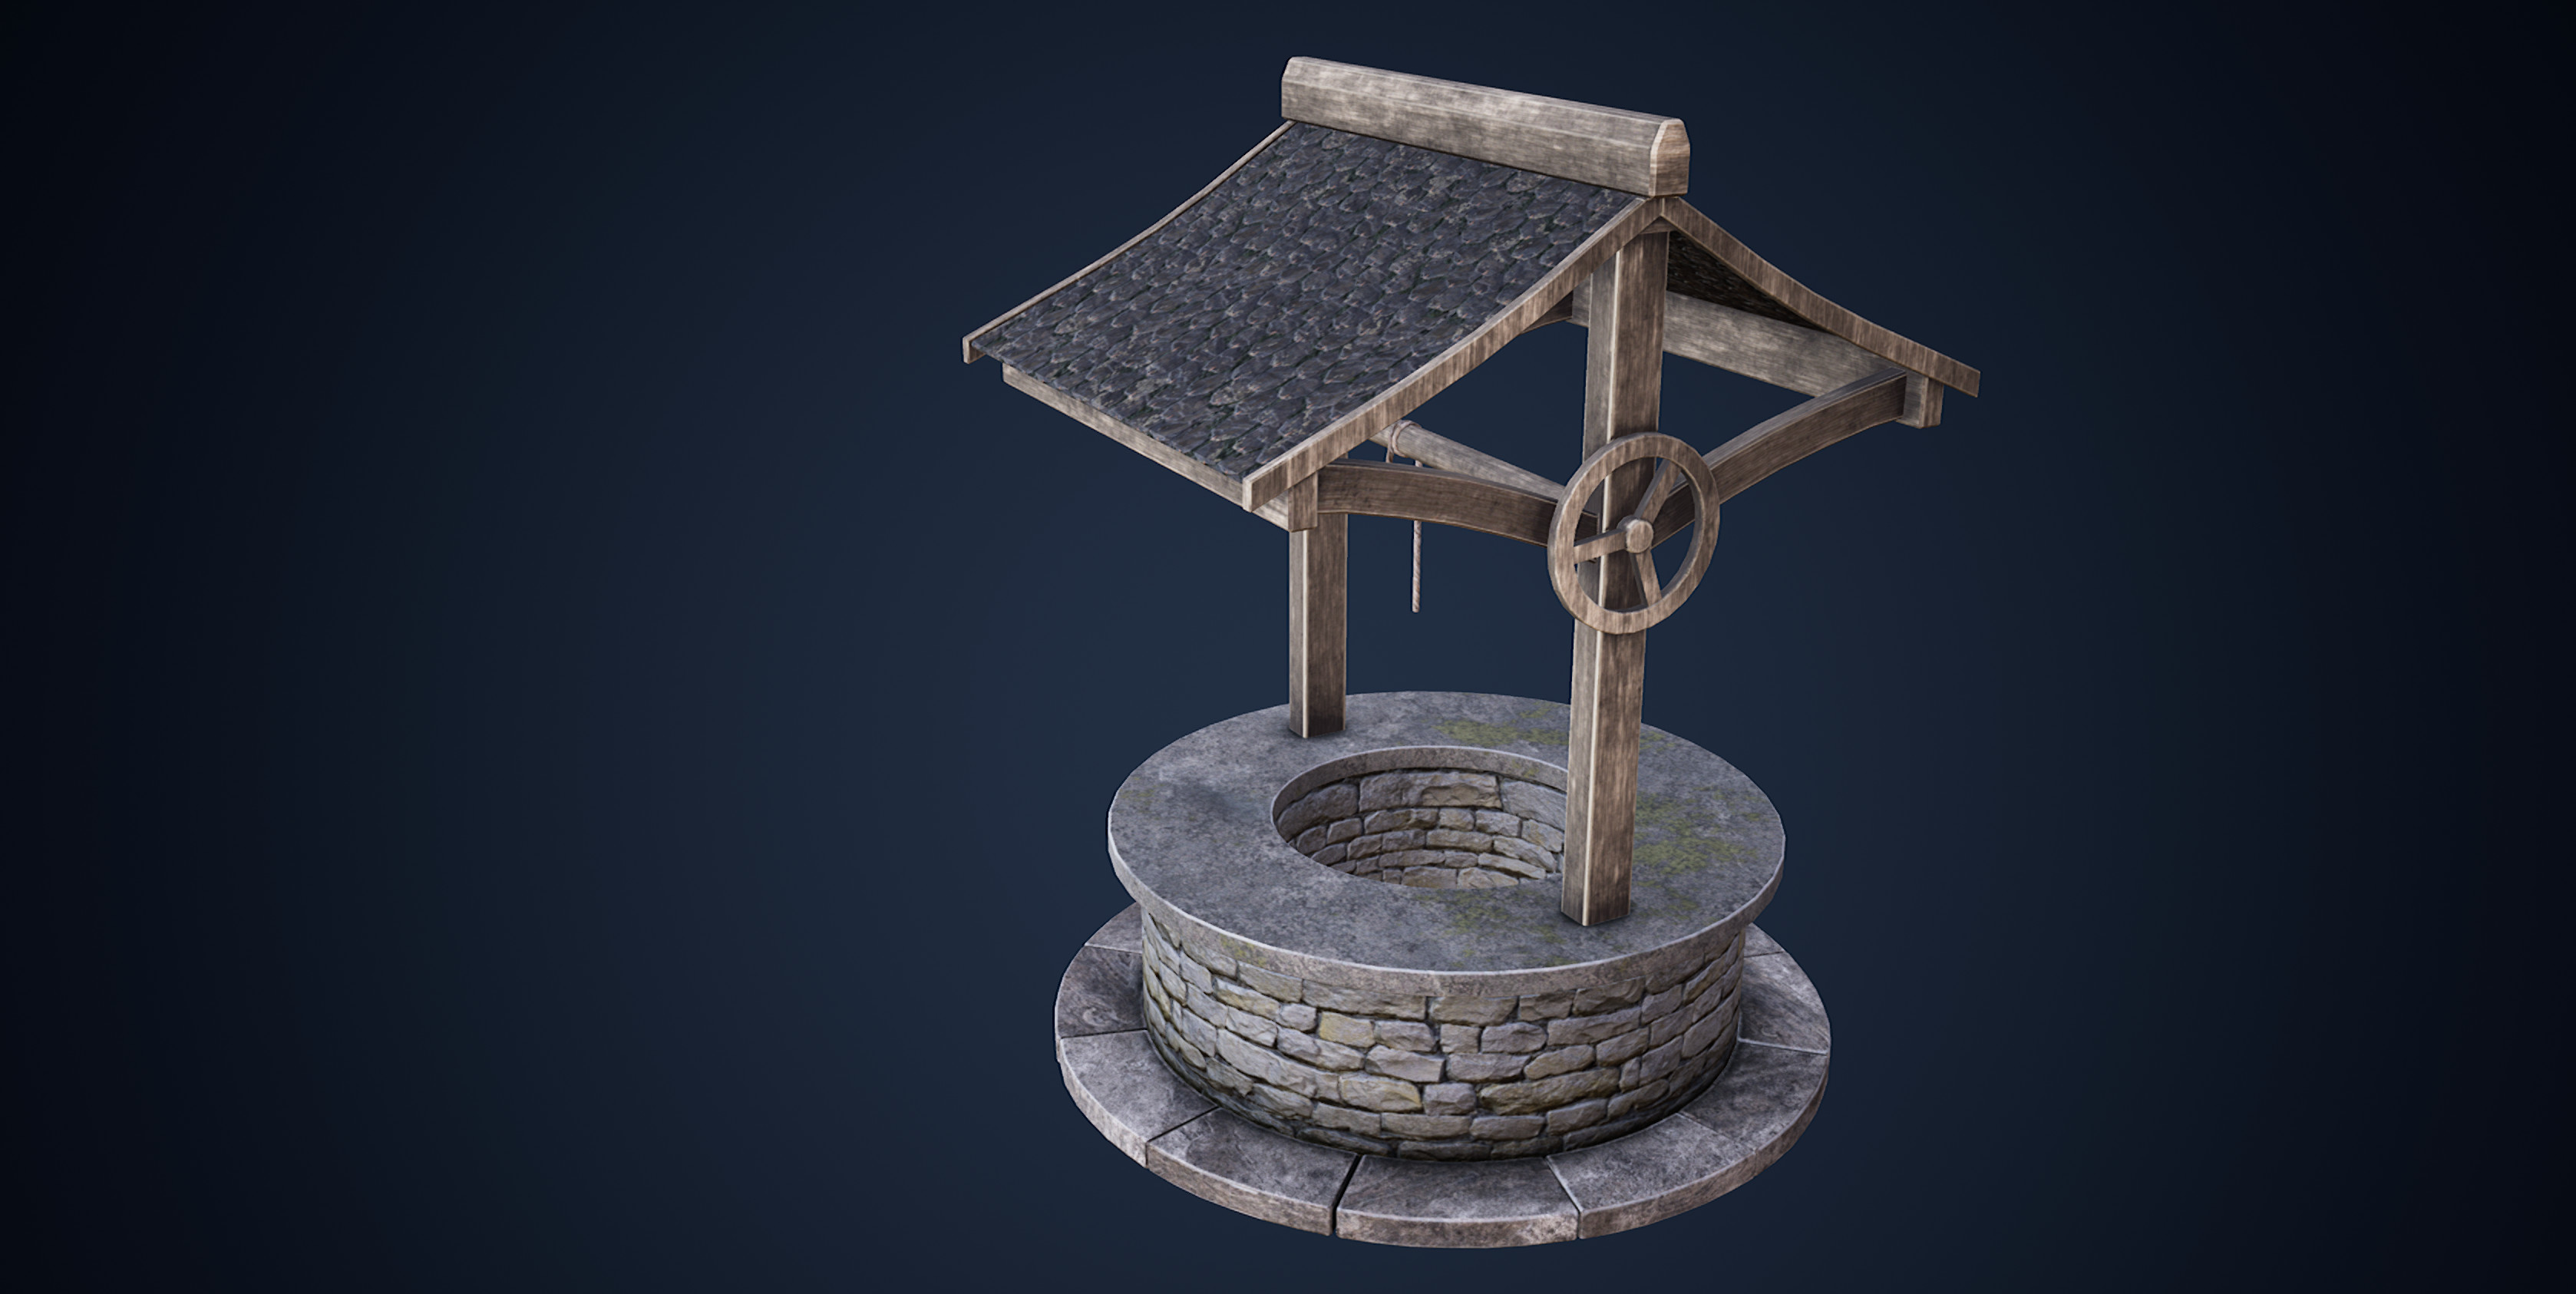 A Well (Painted with Substance)